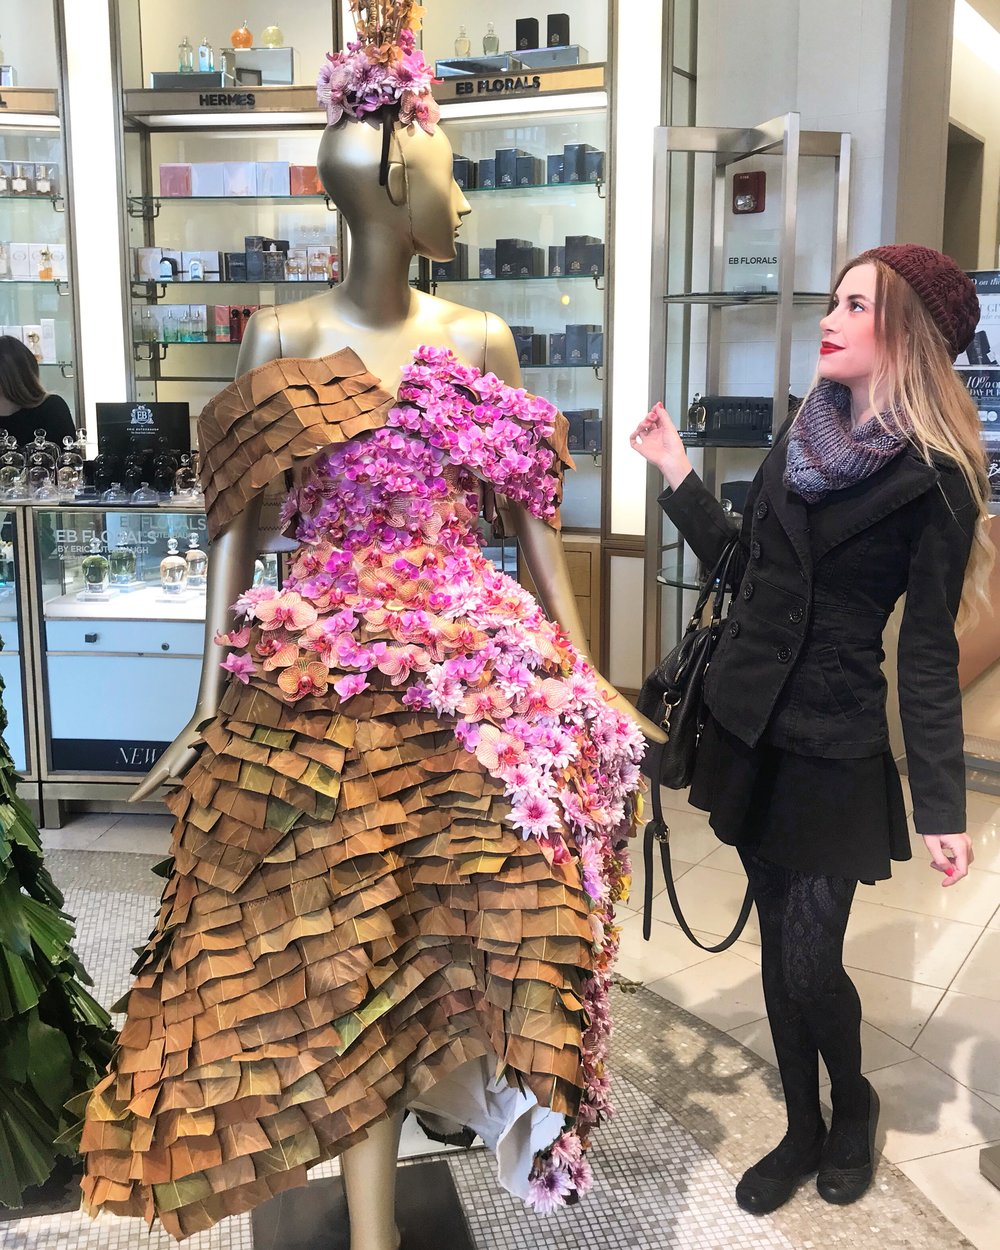 Some amazing avant-garde Fashion on Display in Saks from the local college students.